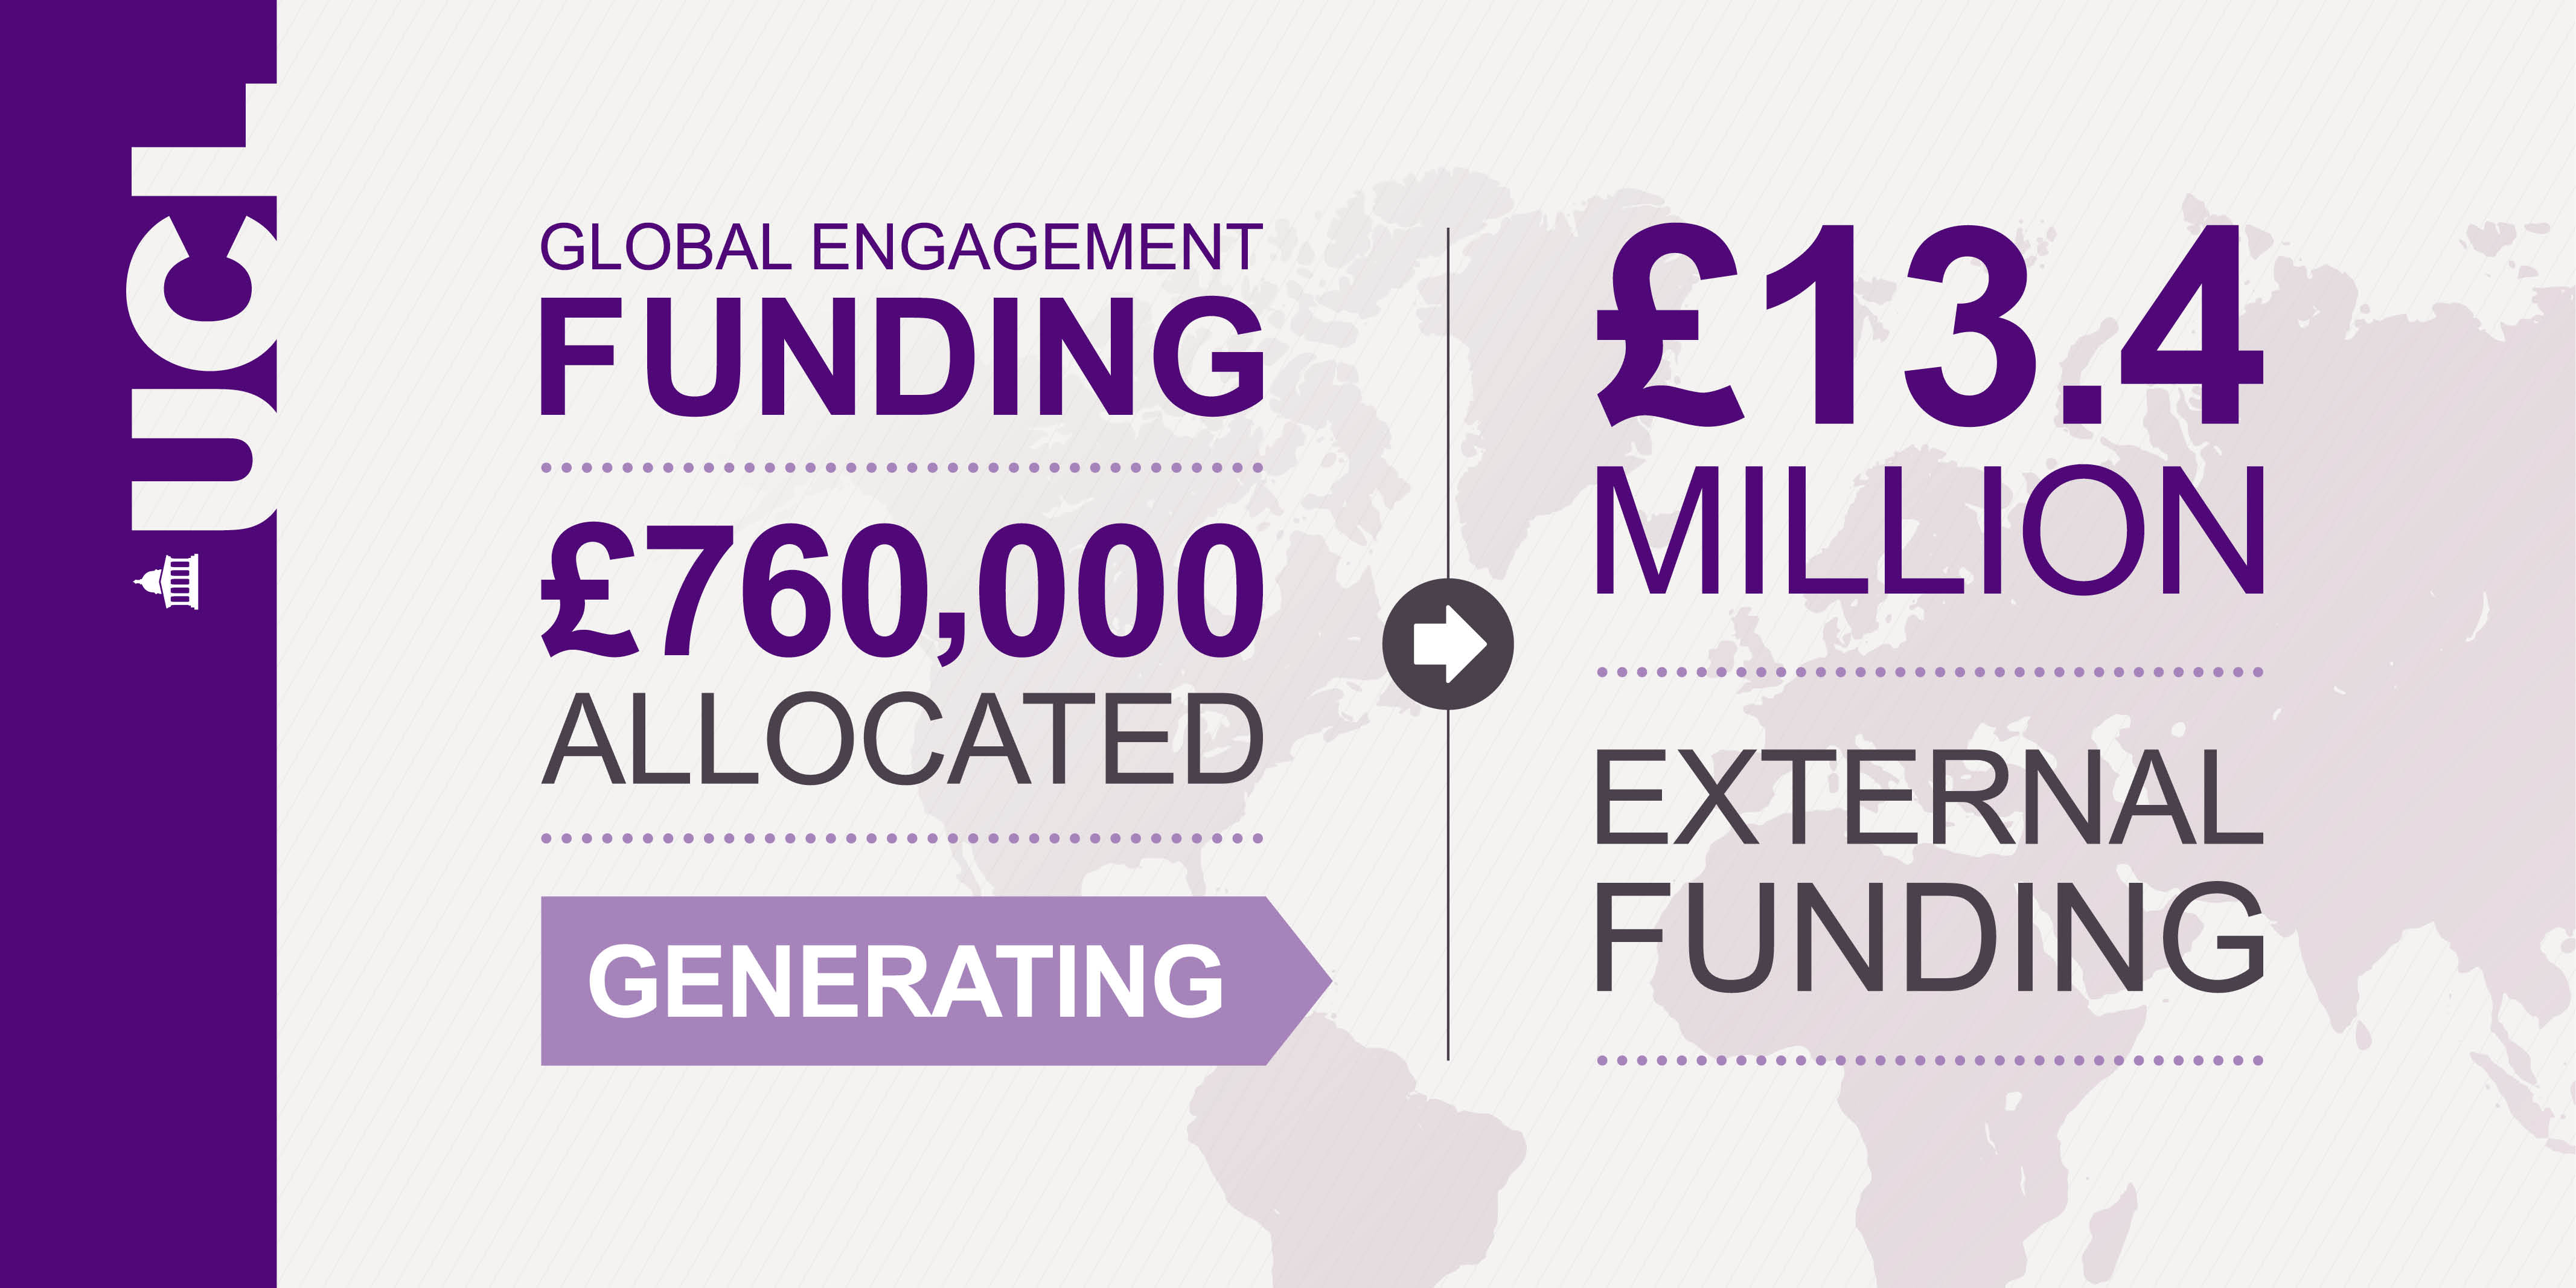 Global Engagement Funds have generated £13.4m in external funding